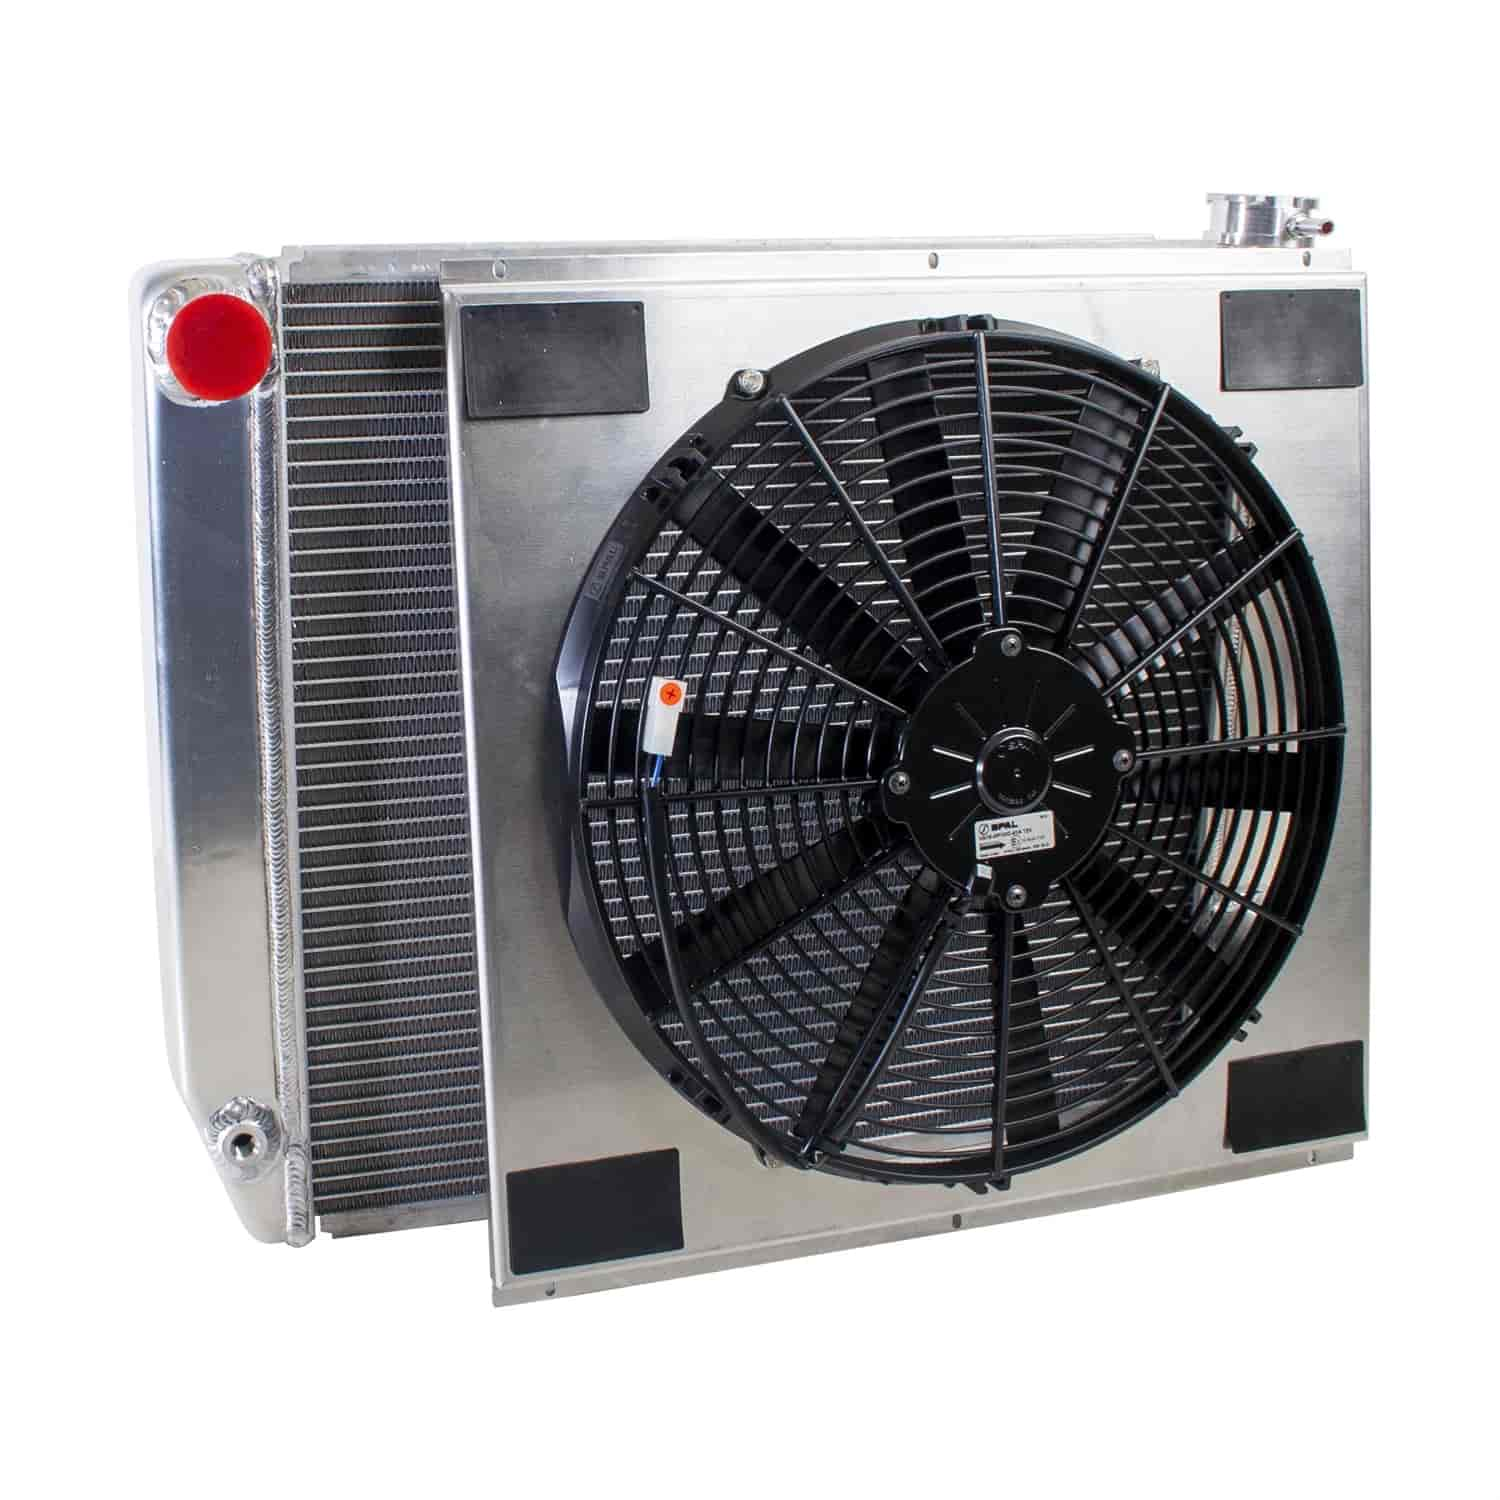 Griffin radiators cu 55202 x megacool combounit universal fit griffin radiators cu 55202 x megacool combounit universal fit radiator and fan single pass crossflow design 24 x 19 with no options jegs asfbconference2016 Image collections